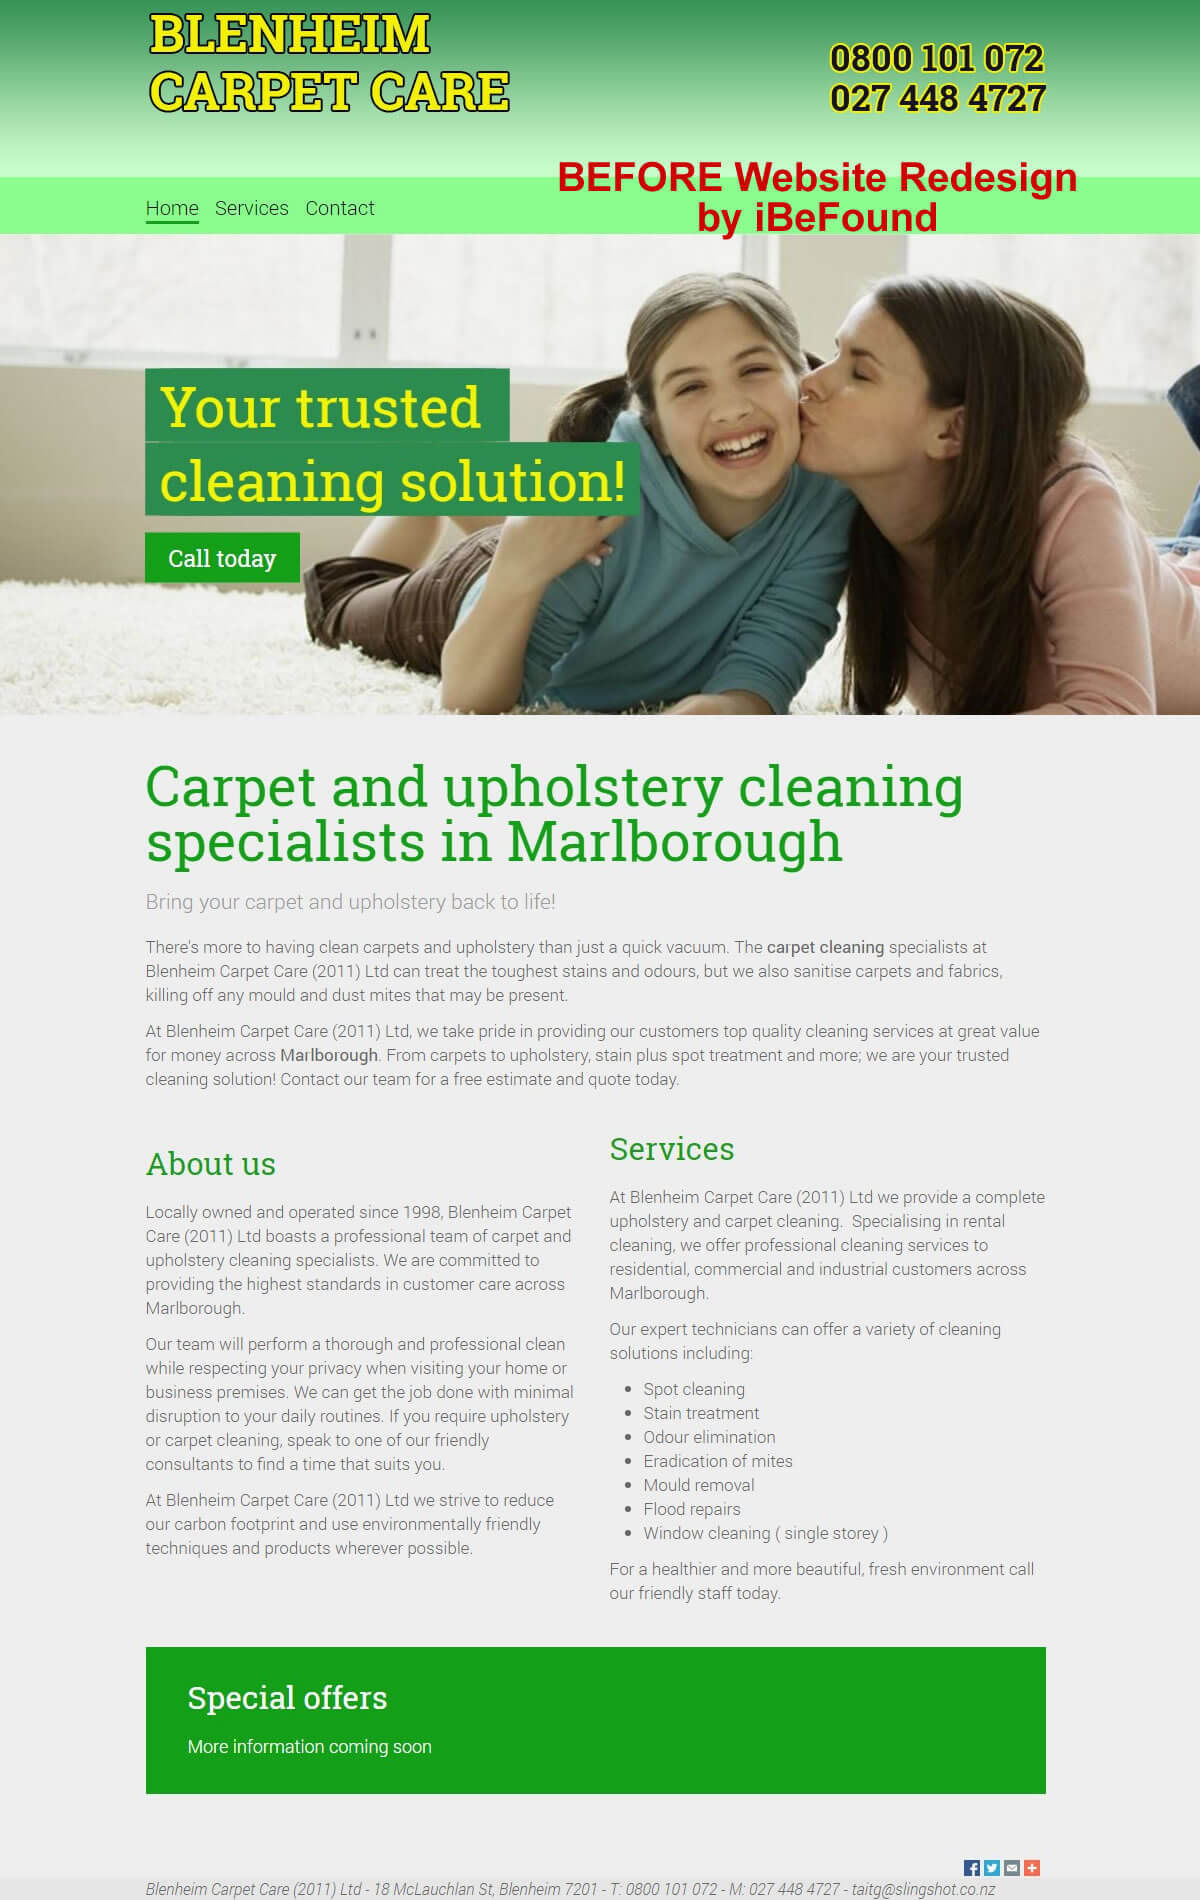 Homepage of Blenheim Carpet Care Before Website Redesign by iBeFound